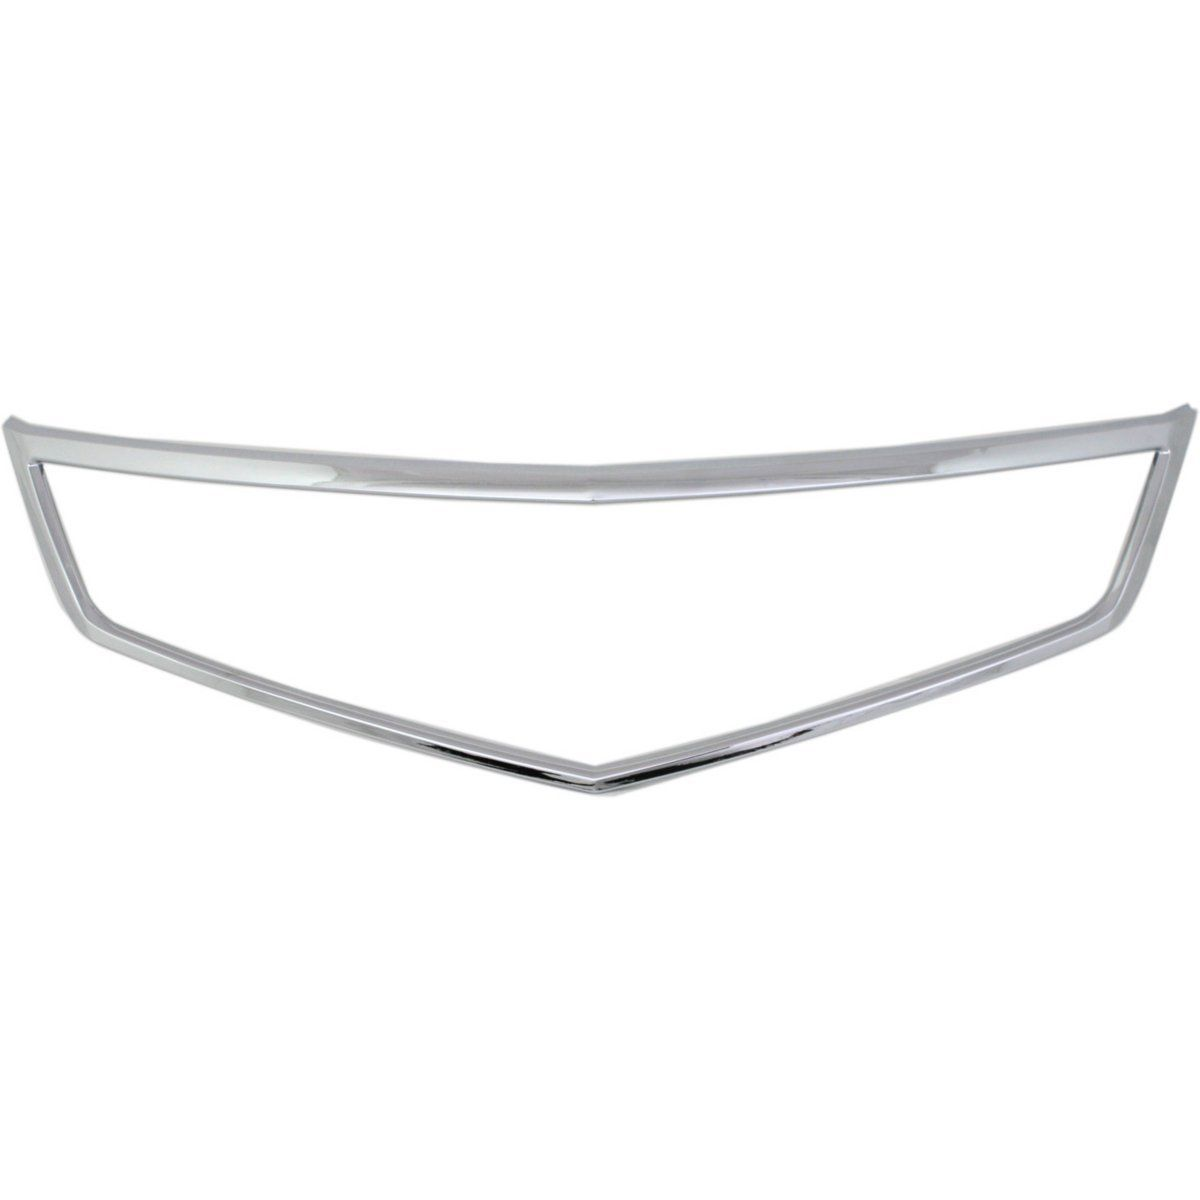 New Grille Trim Grill Chrome For Acura TSX 2006-2008